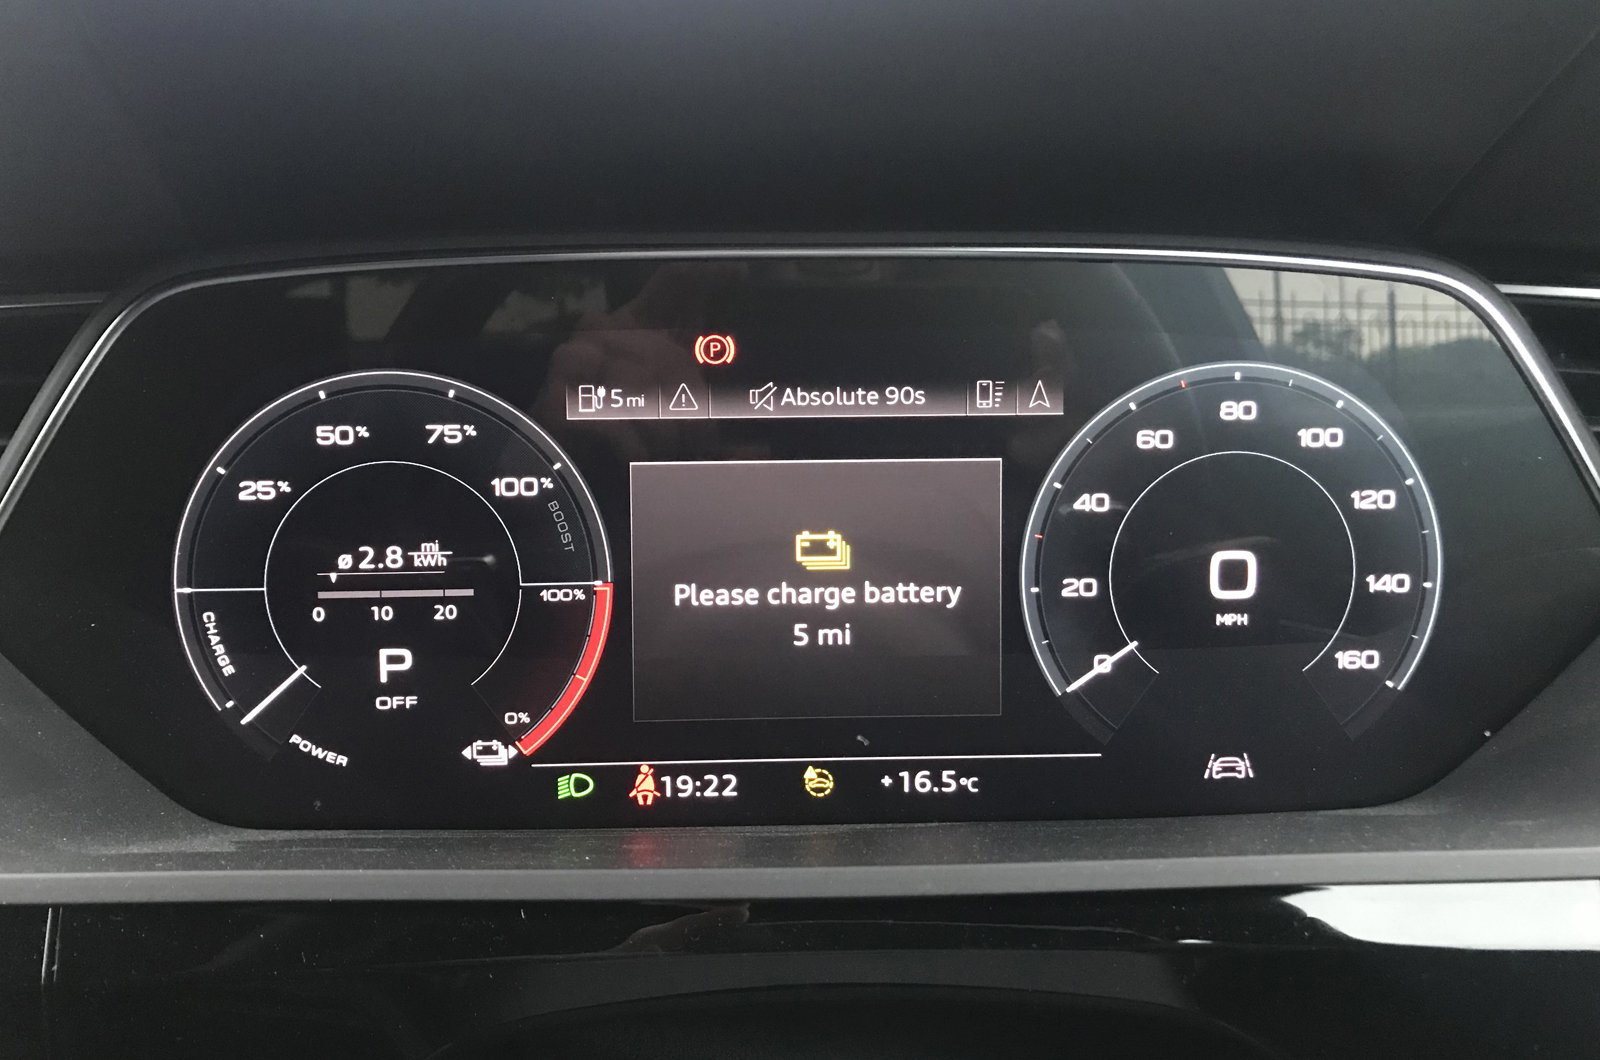 LT Audi E-tron Sportback with five miles of charge left